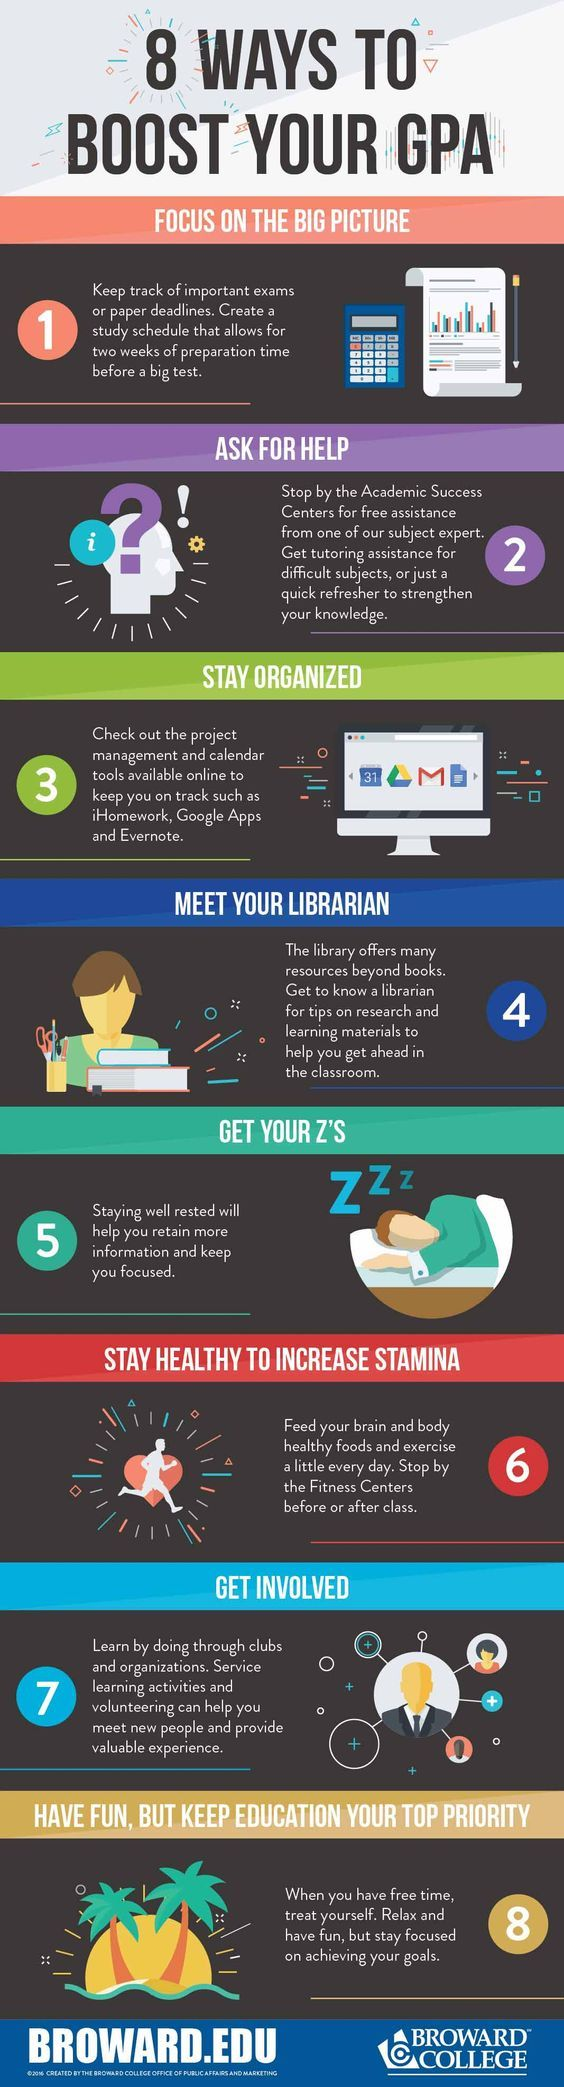 8 Ways To Boost Your GPA